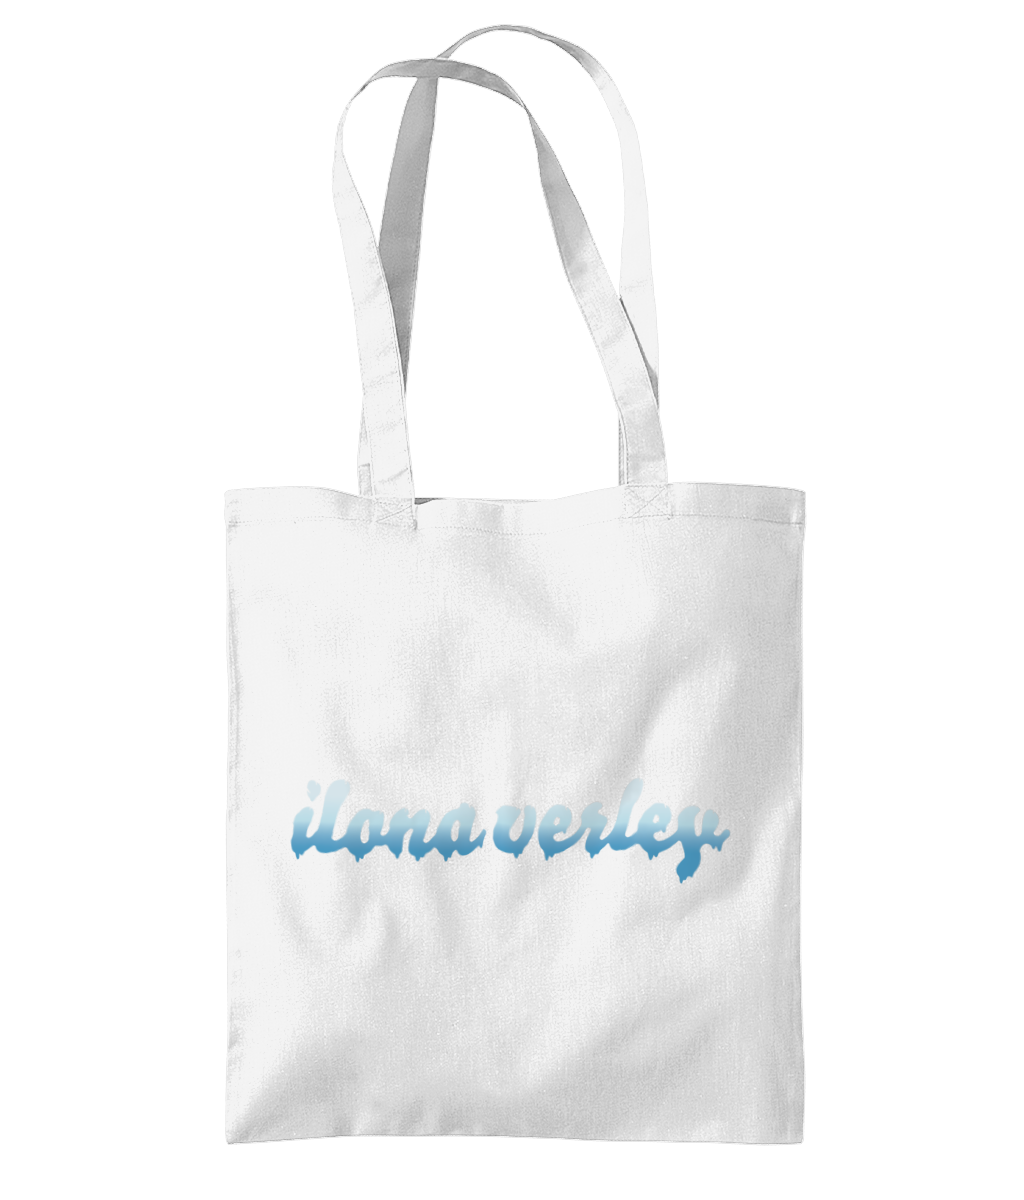 Ilona Verley - Ilona x Natairy Tote Bag - SNATCHED MERCH